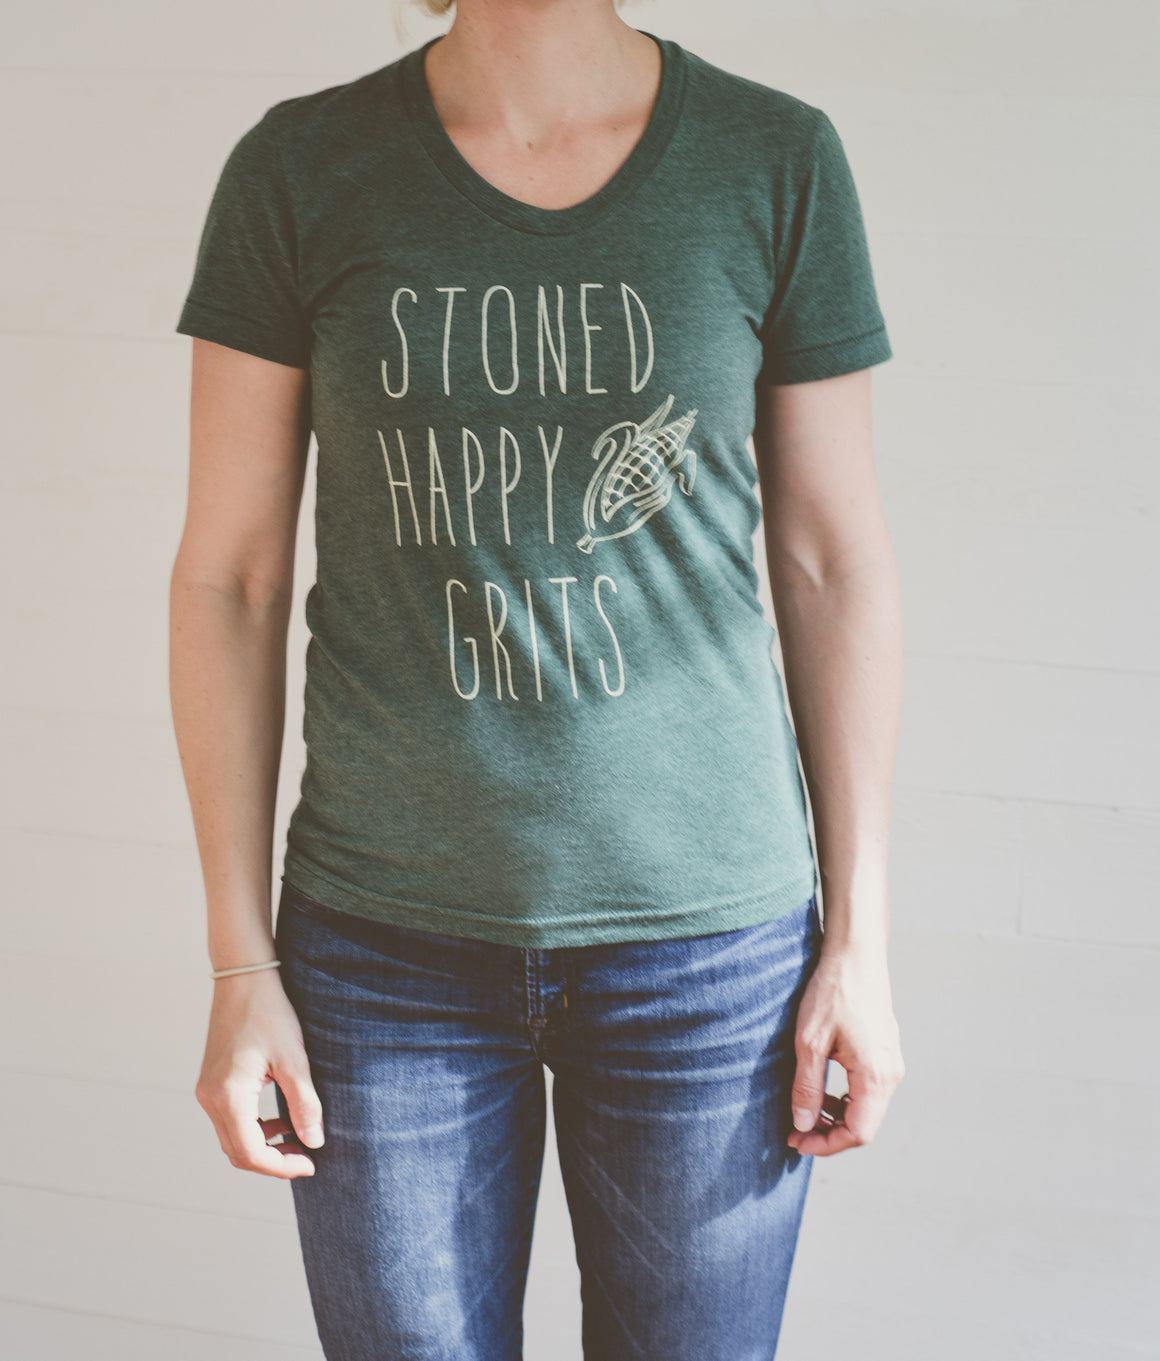 Barkley's Mill Stoned Happy Grits Women's Crew T-shirt